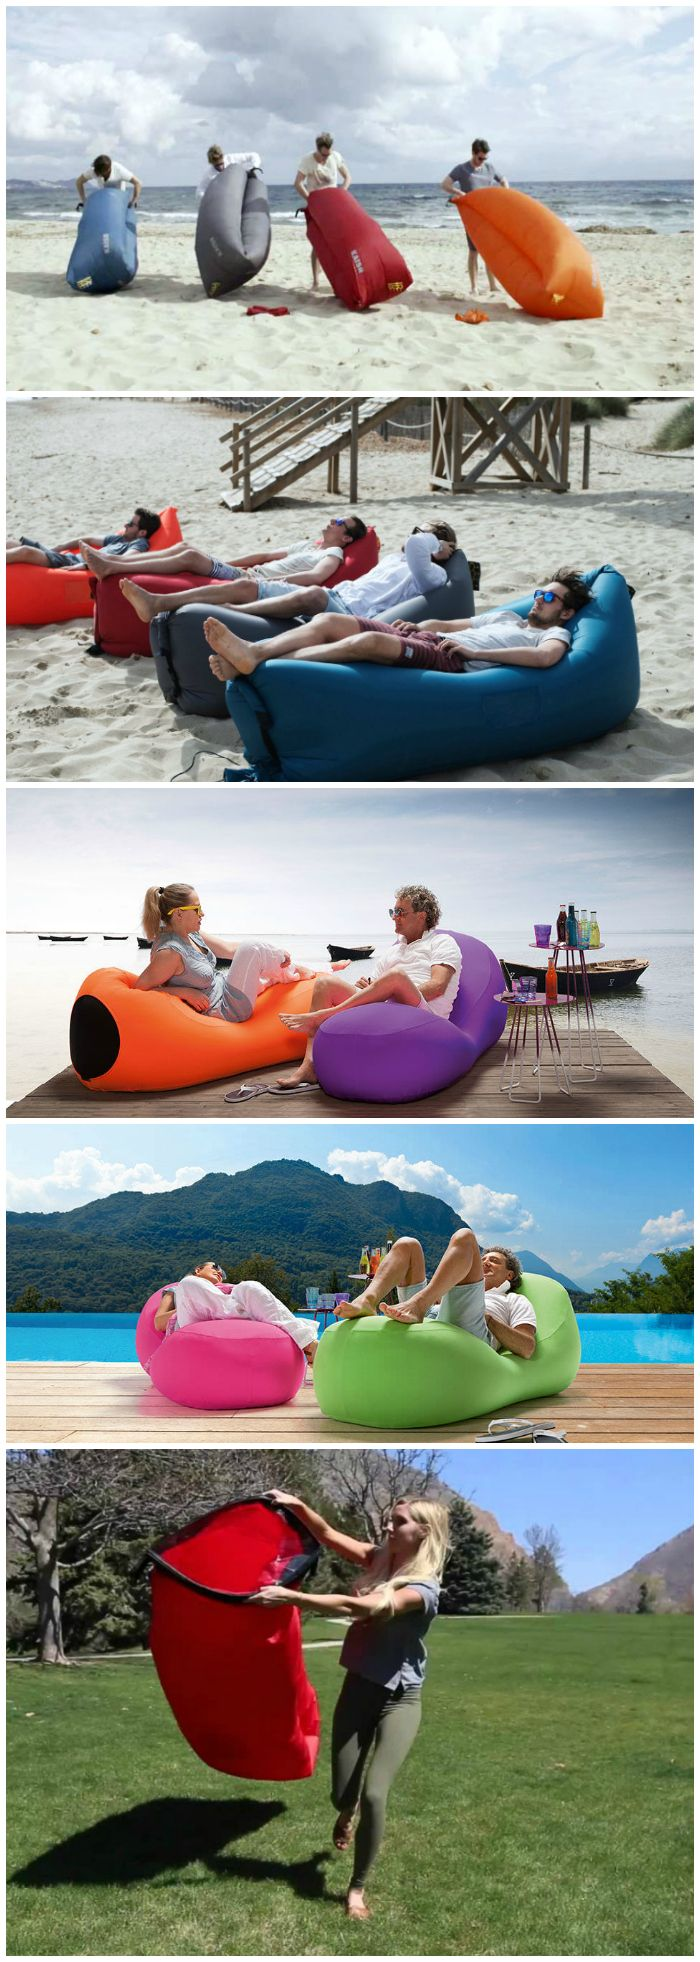 Beach lounge chair portable - Portable Inflatable Lounger Inflates In Seconds